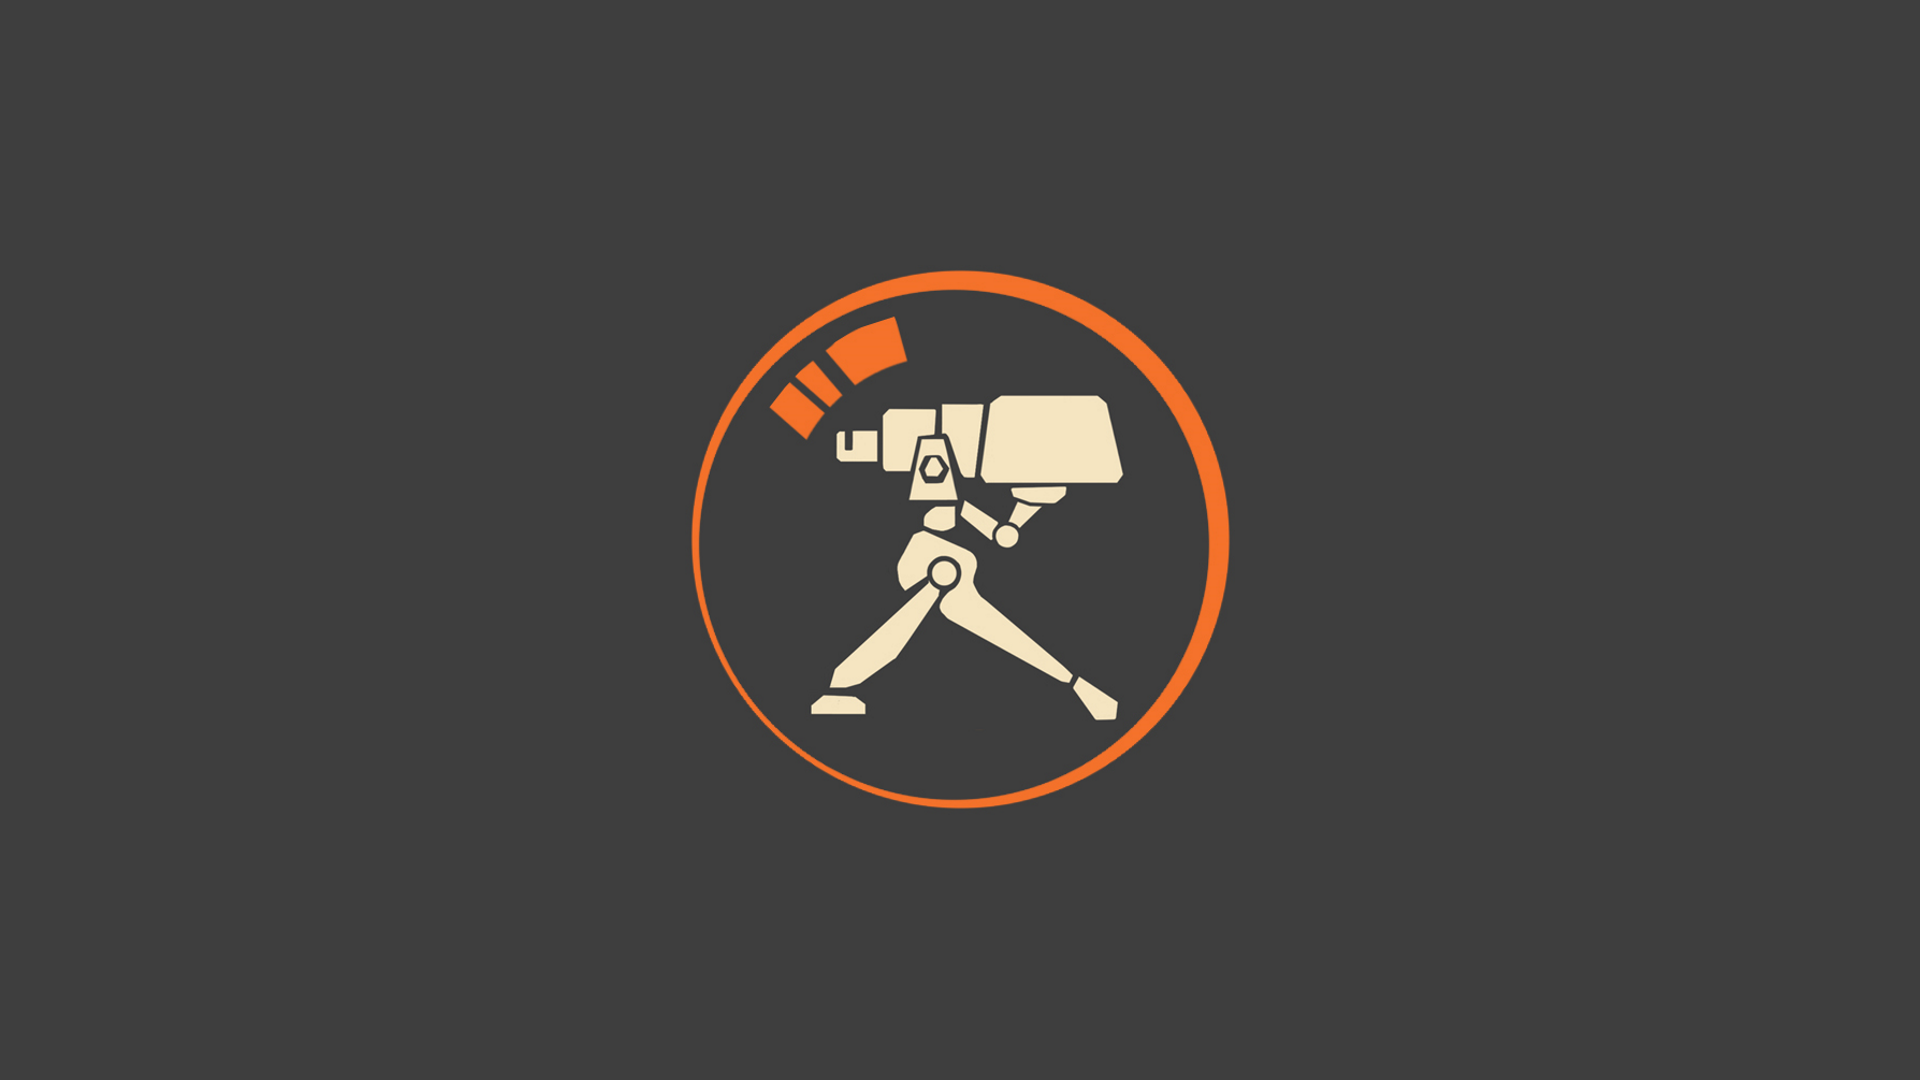 Made A Set Of Tf2 Achievement Wallpapers 1920x1080 Games Teamfortress2 Steam Tf2 Steamnewrelease Gaming Valve Wallpaper How To Make Achievement